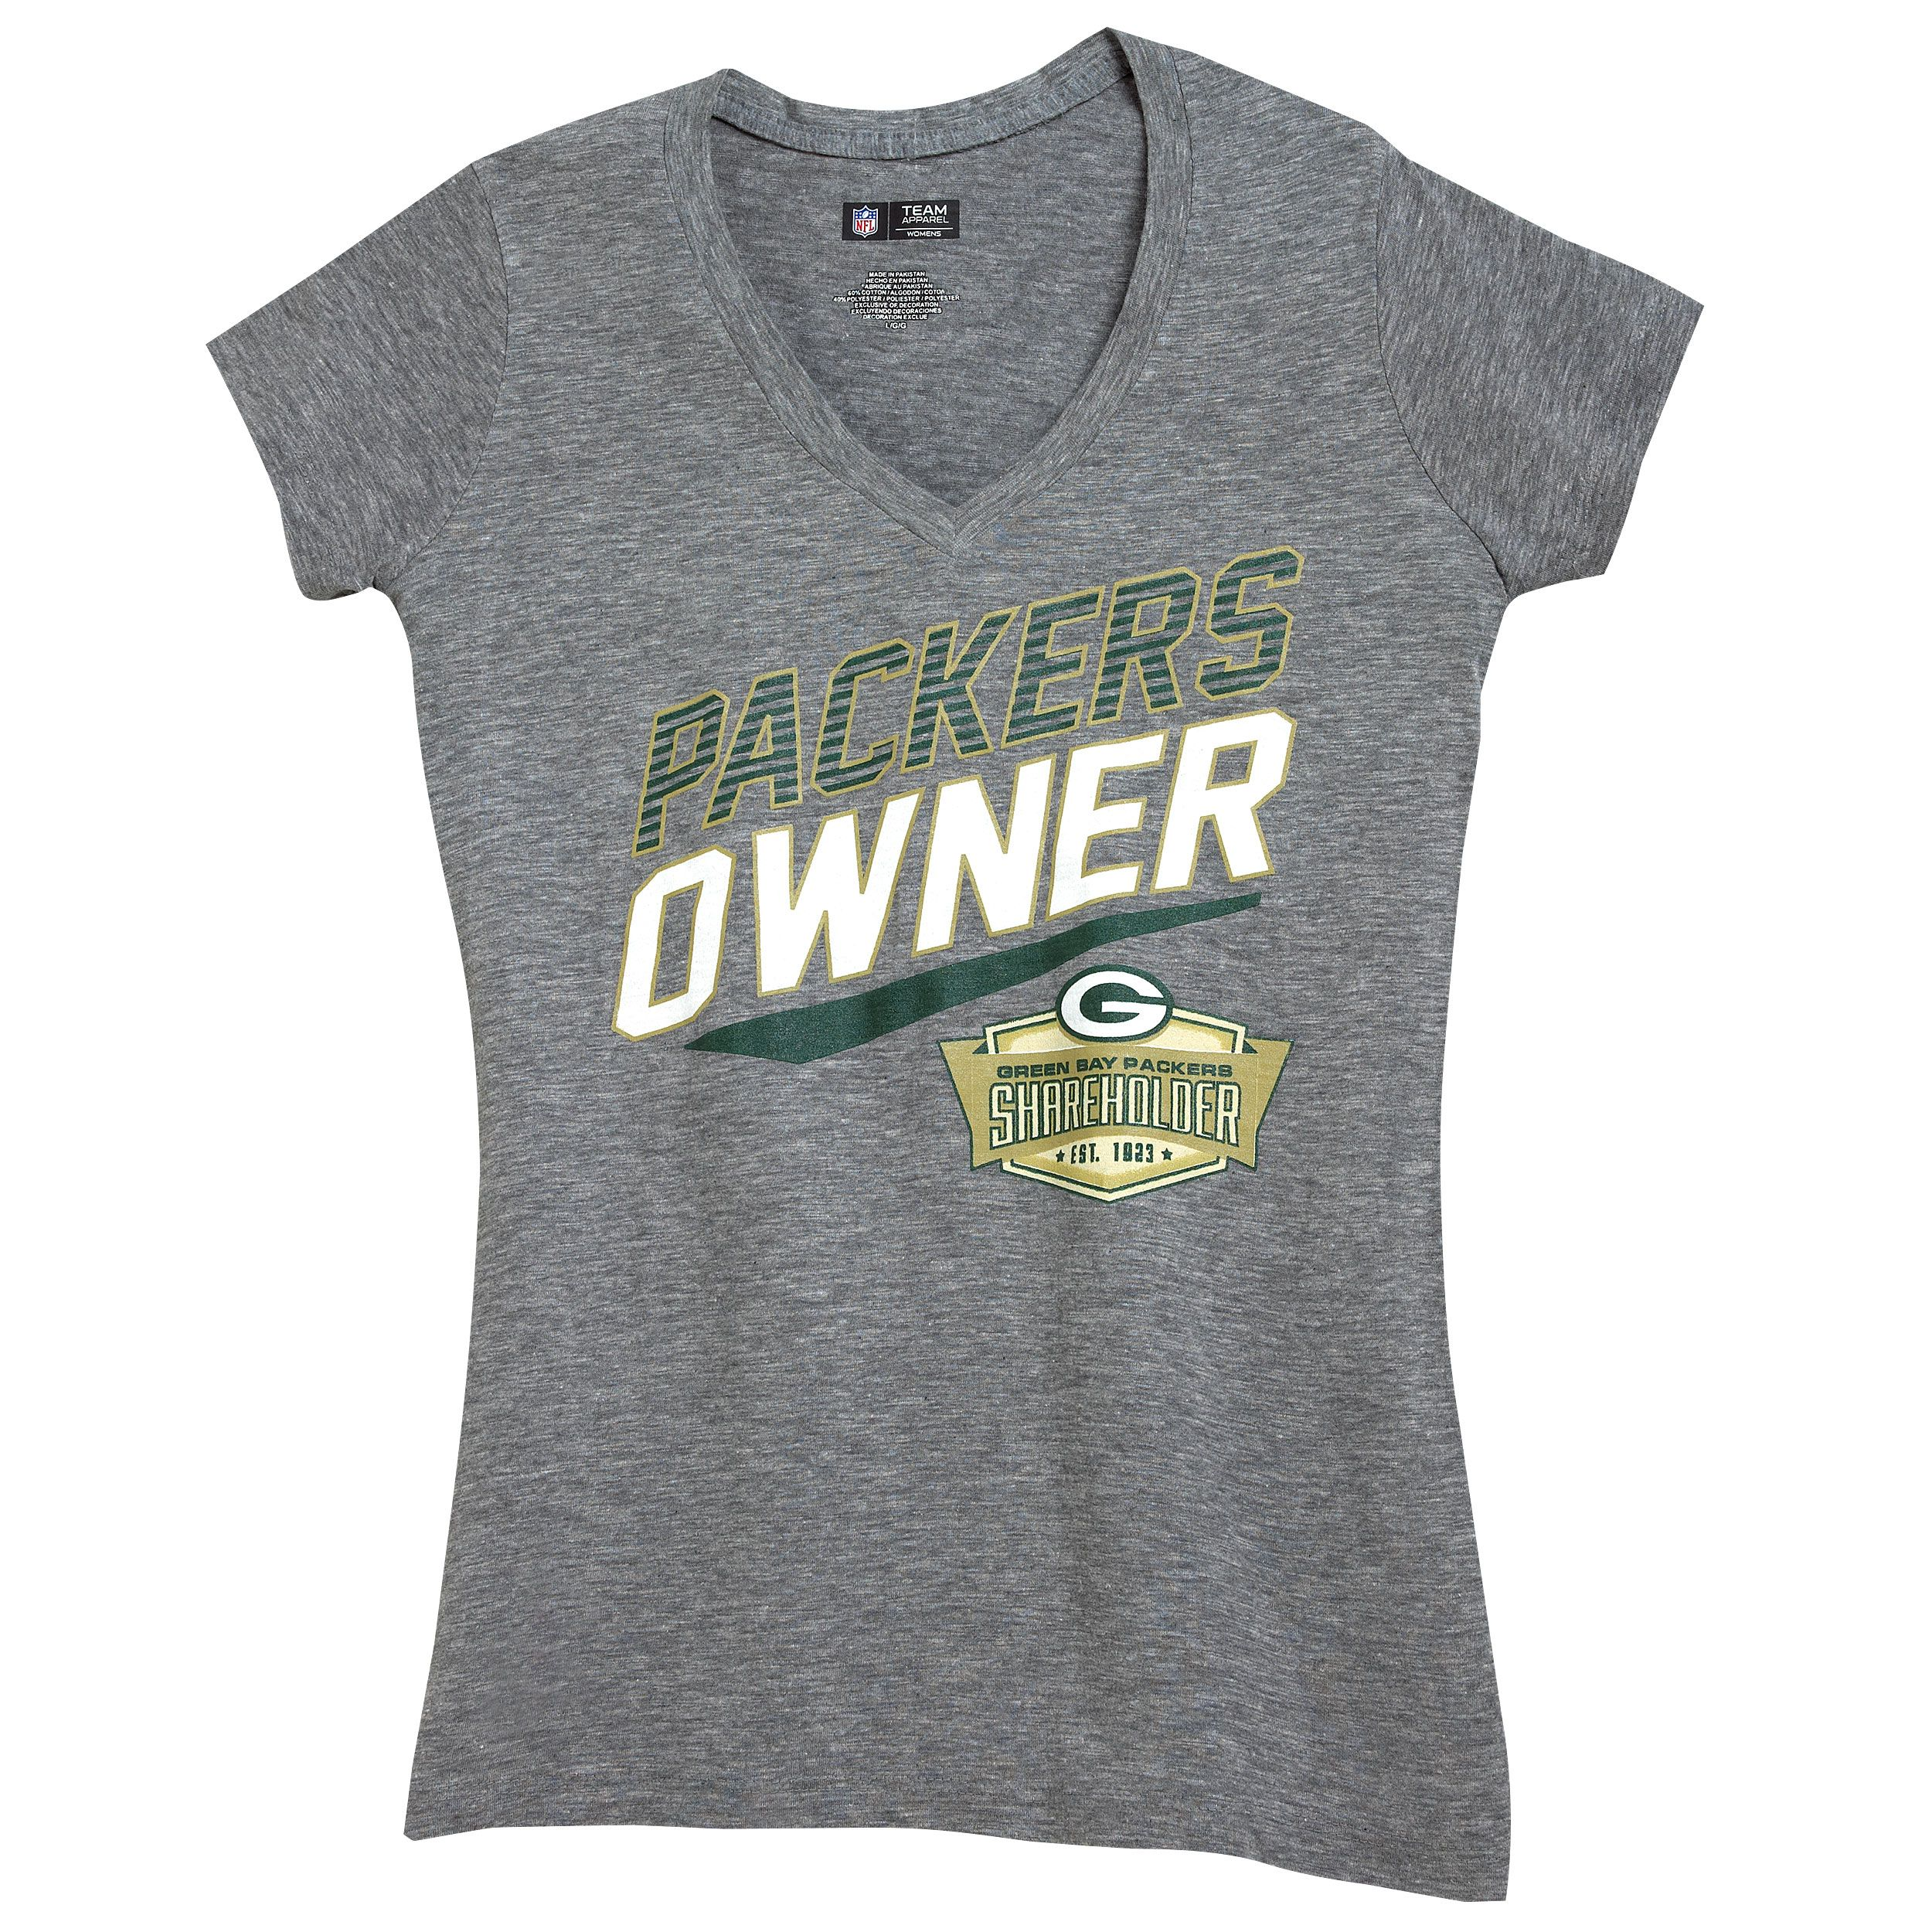 Green Bay Packers Shareholder Women's V Neck T Shirt at the Packers